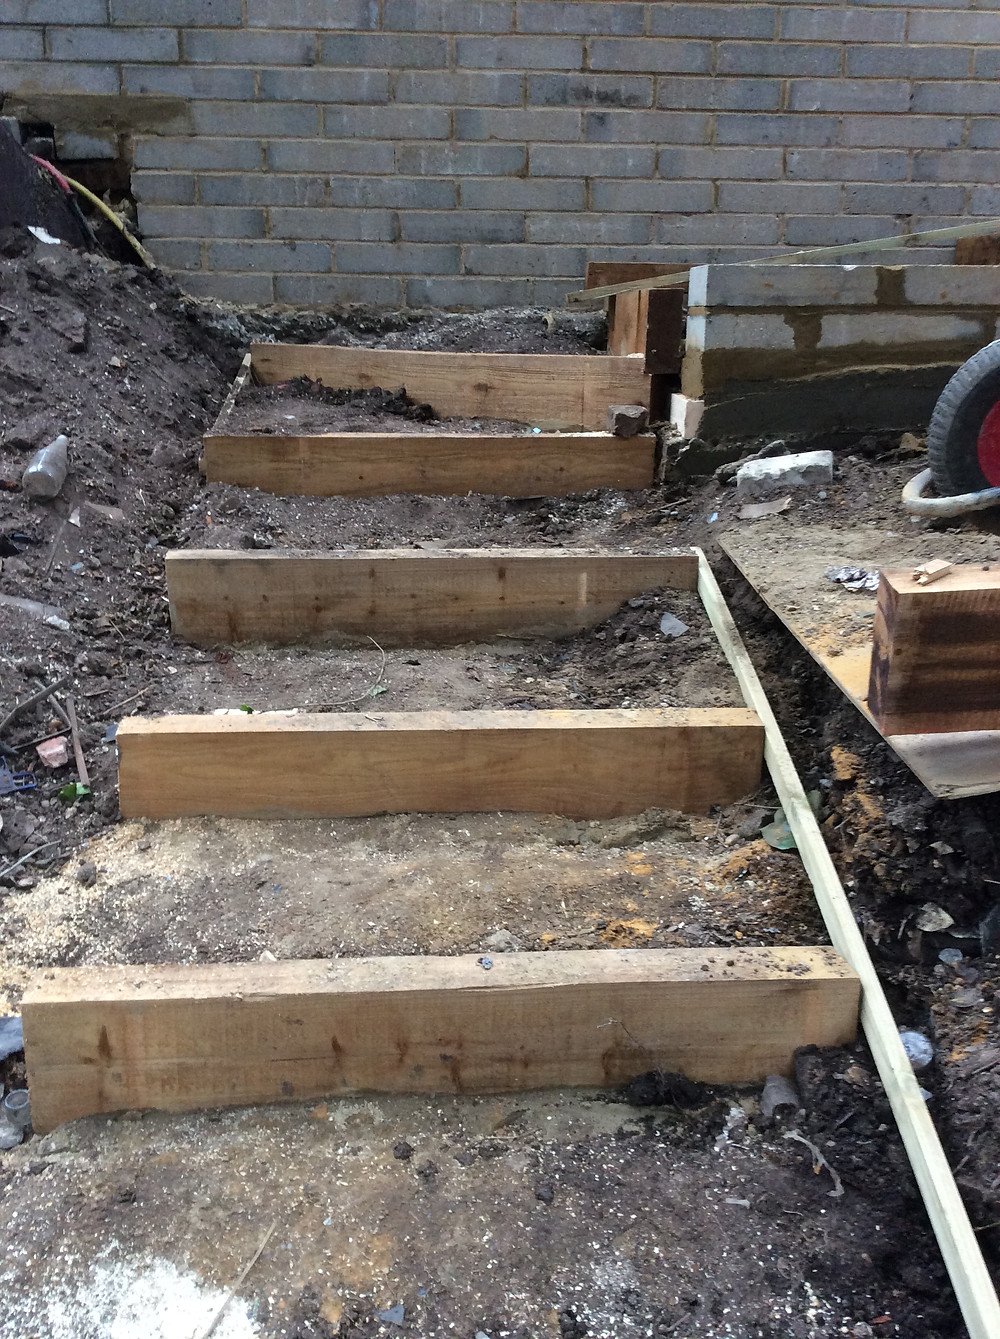 Garden landscaping using concrete bricks and sleepers Muswell Hill, London, N10